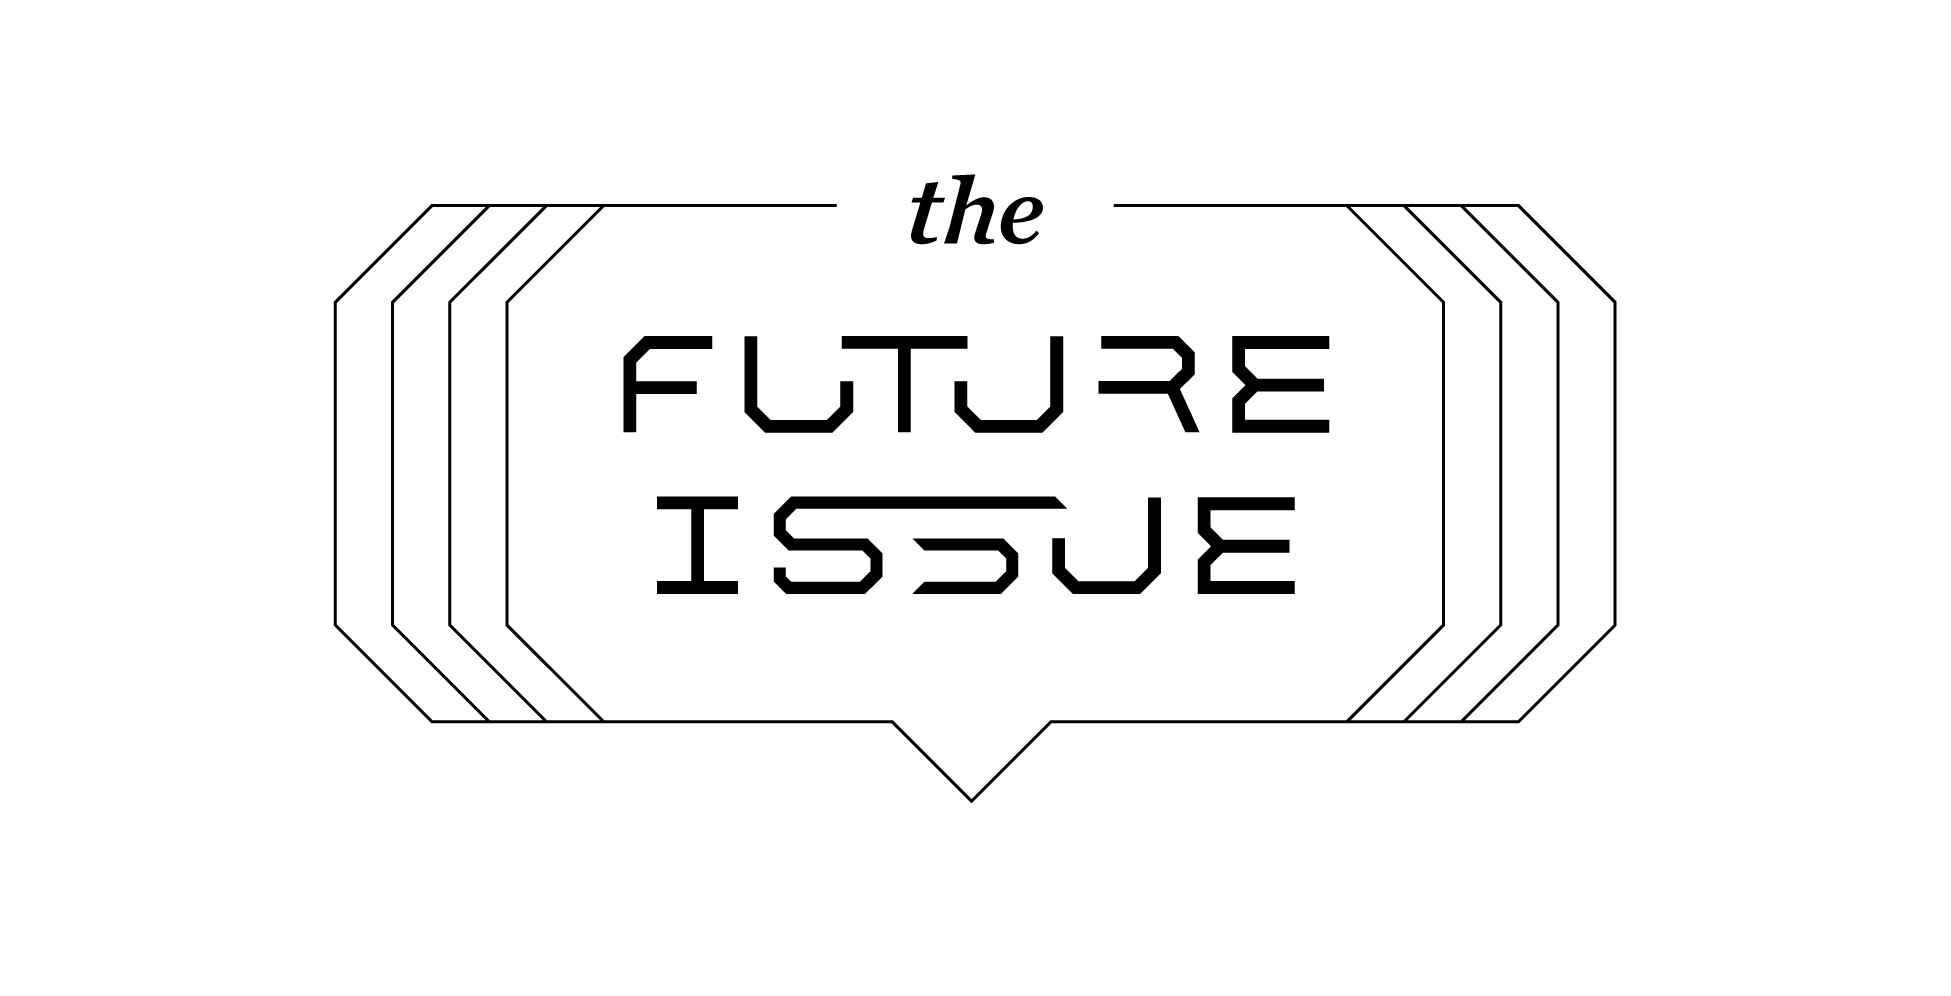 The Future Issue